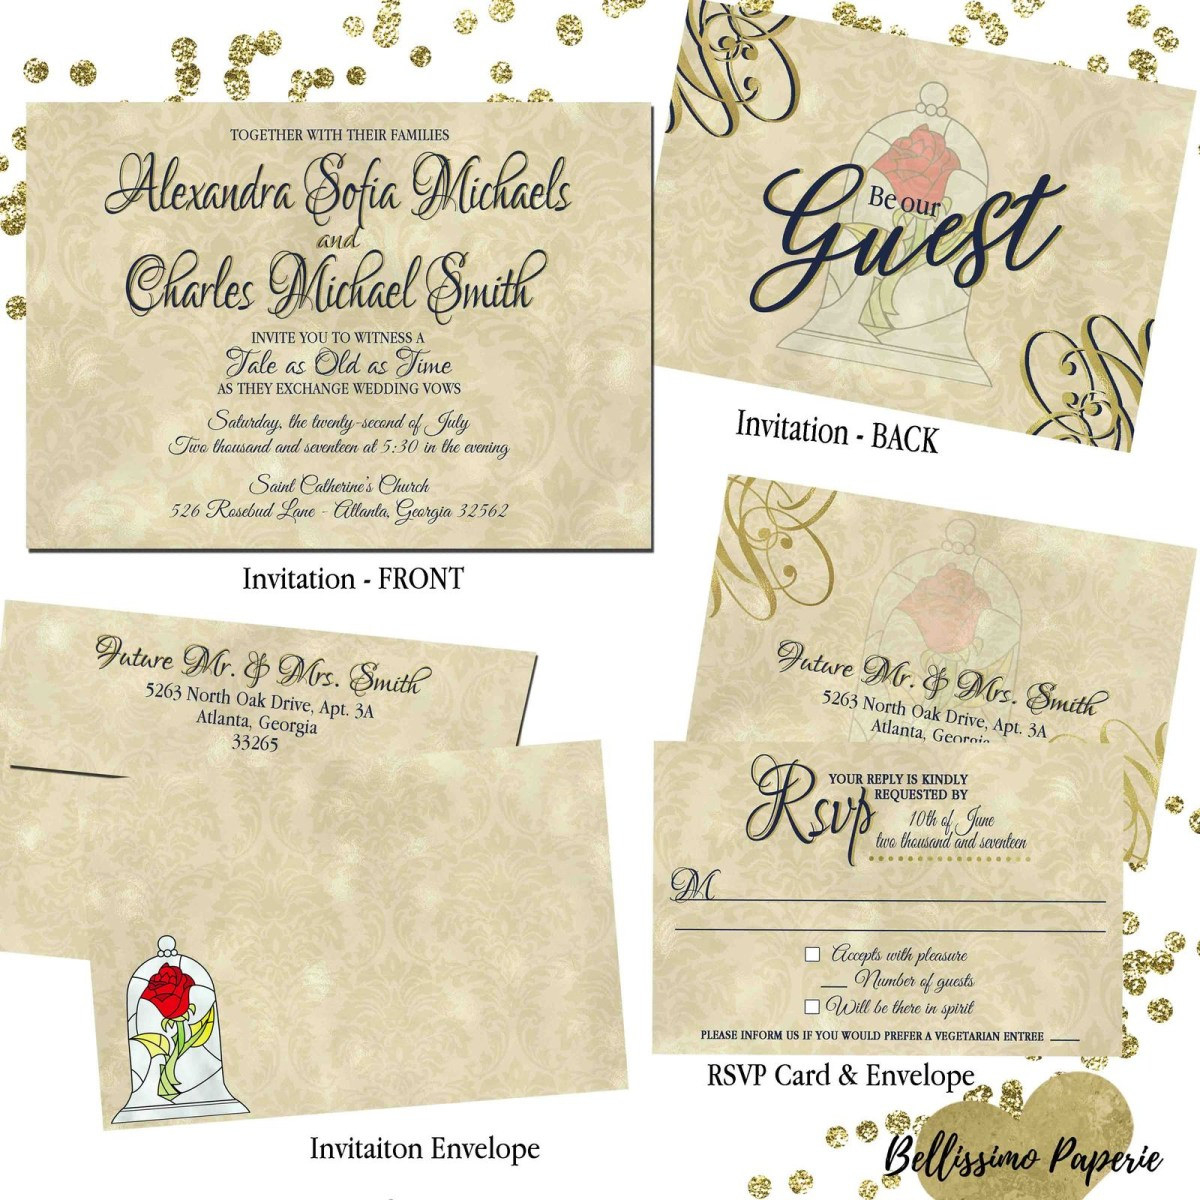 Beauty And The Beast Wedding Invitations Beauty And The Beast Wedding Invitation Set And 50 Similar Items